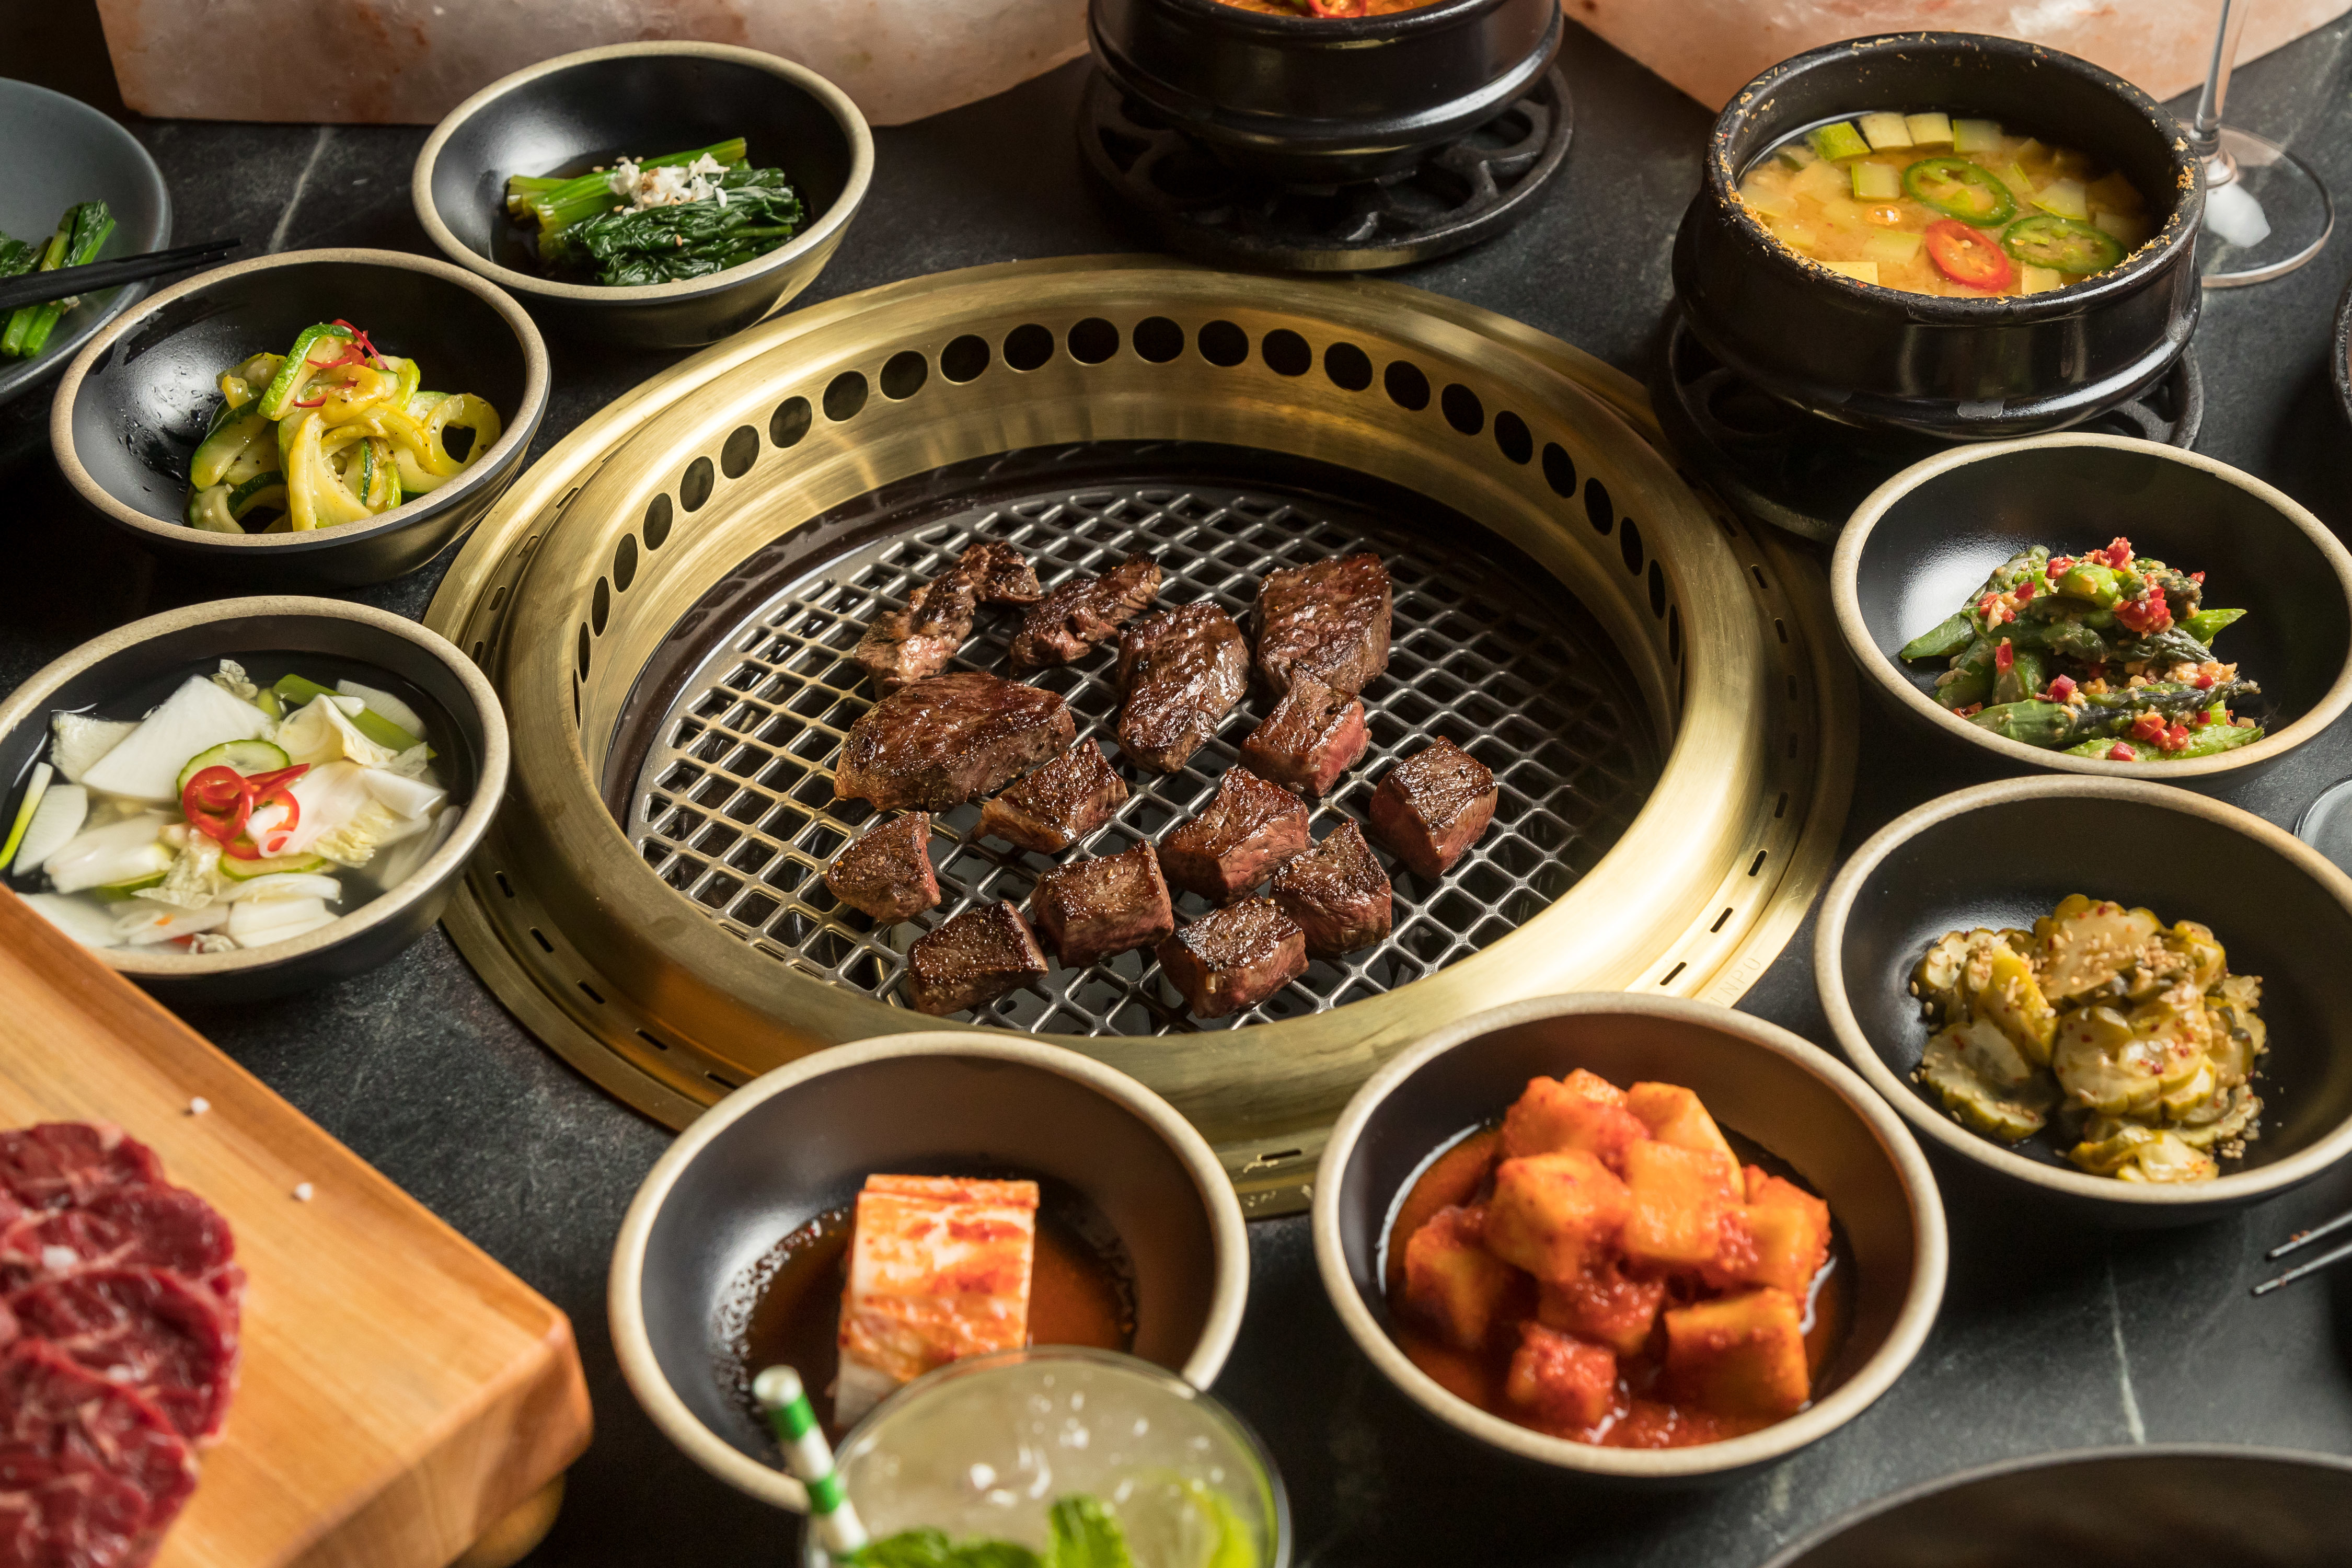 Meat on grill surrounded by bowls filled with vegetables and toppings